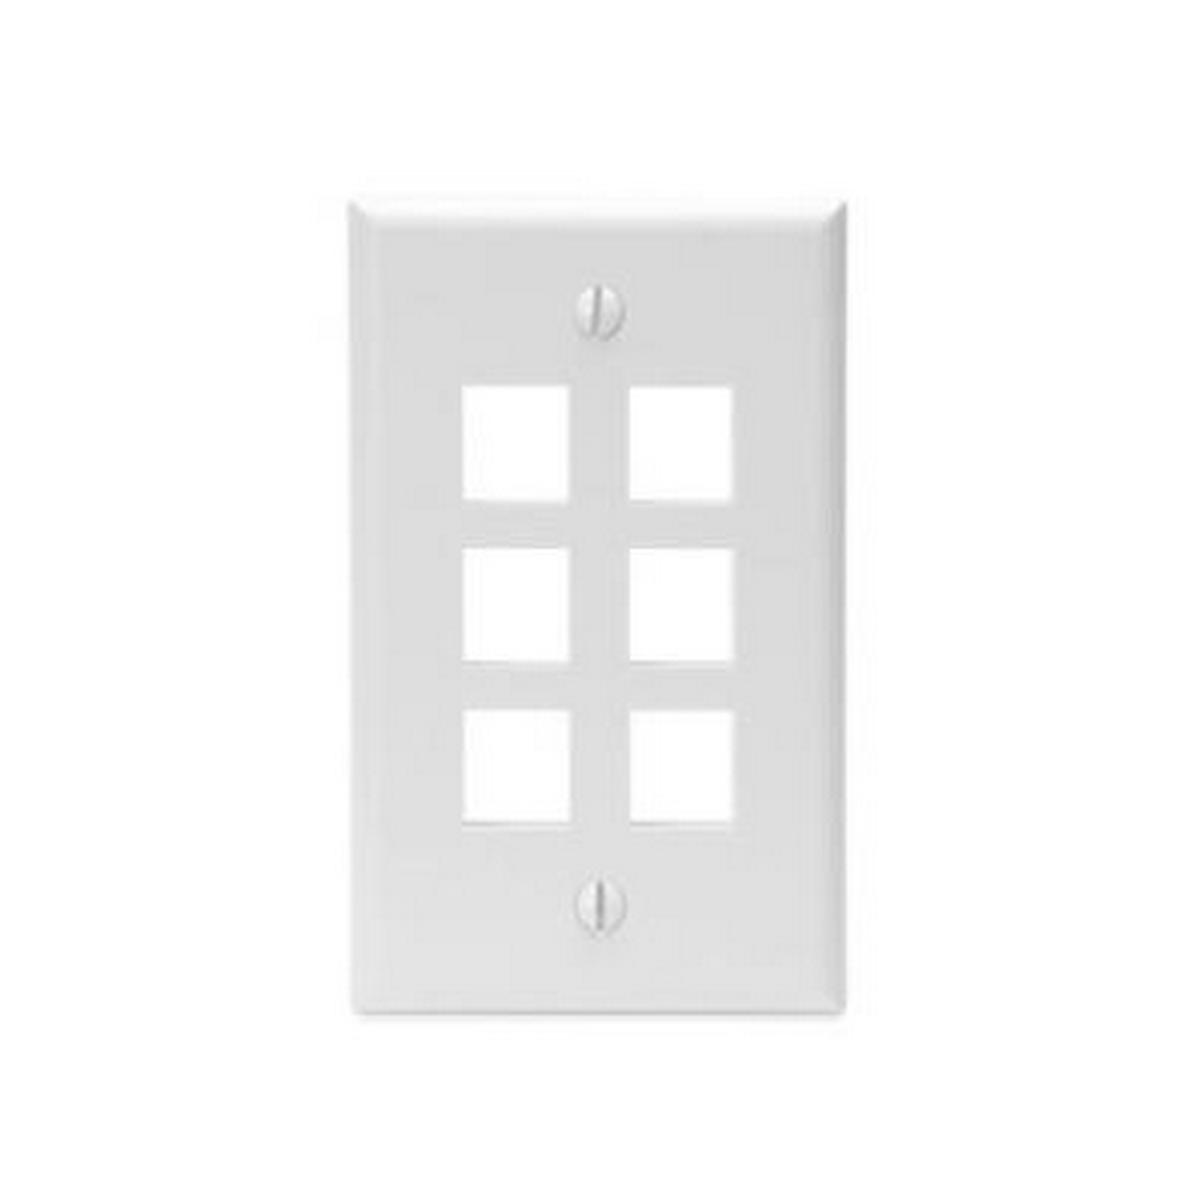 6-port, 1 gang, QuickPort Wallplate, single gang, white